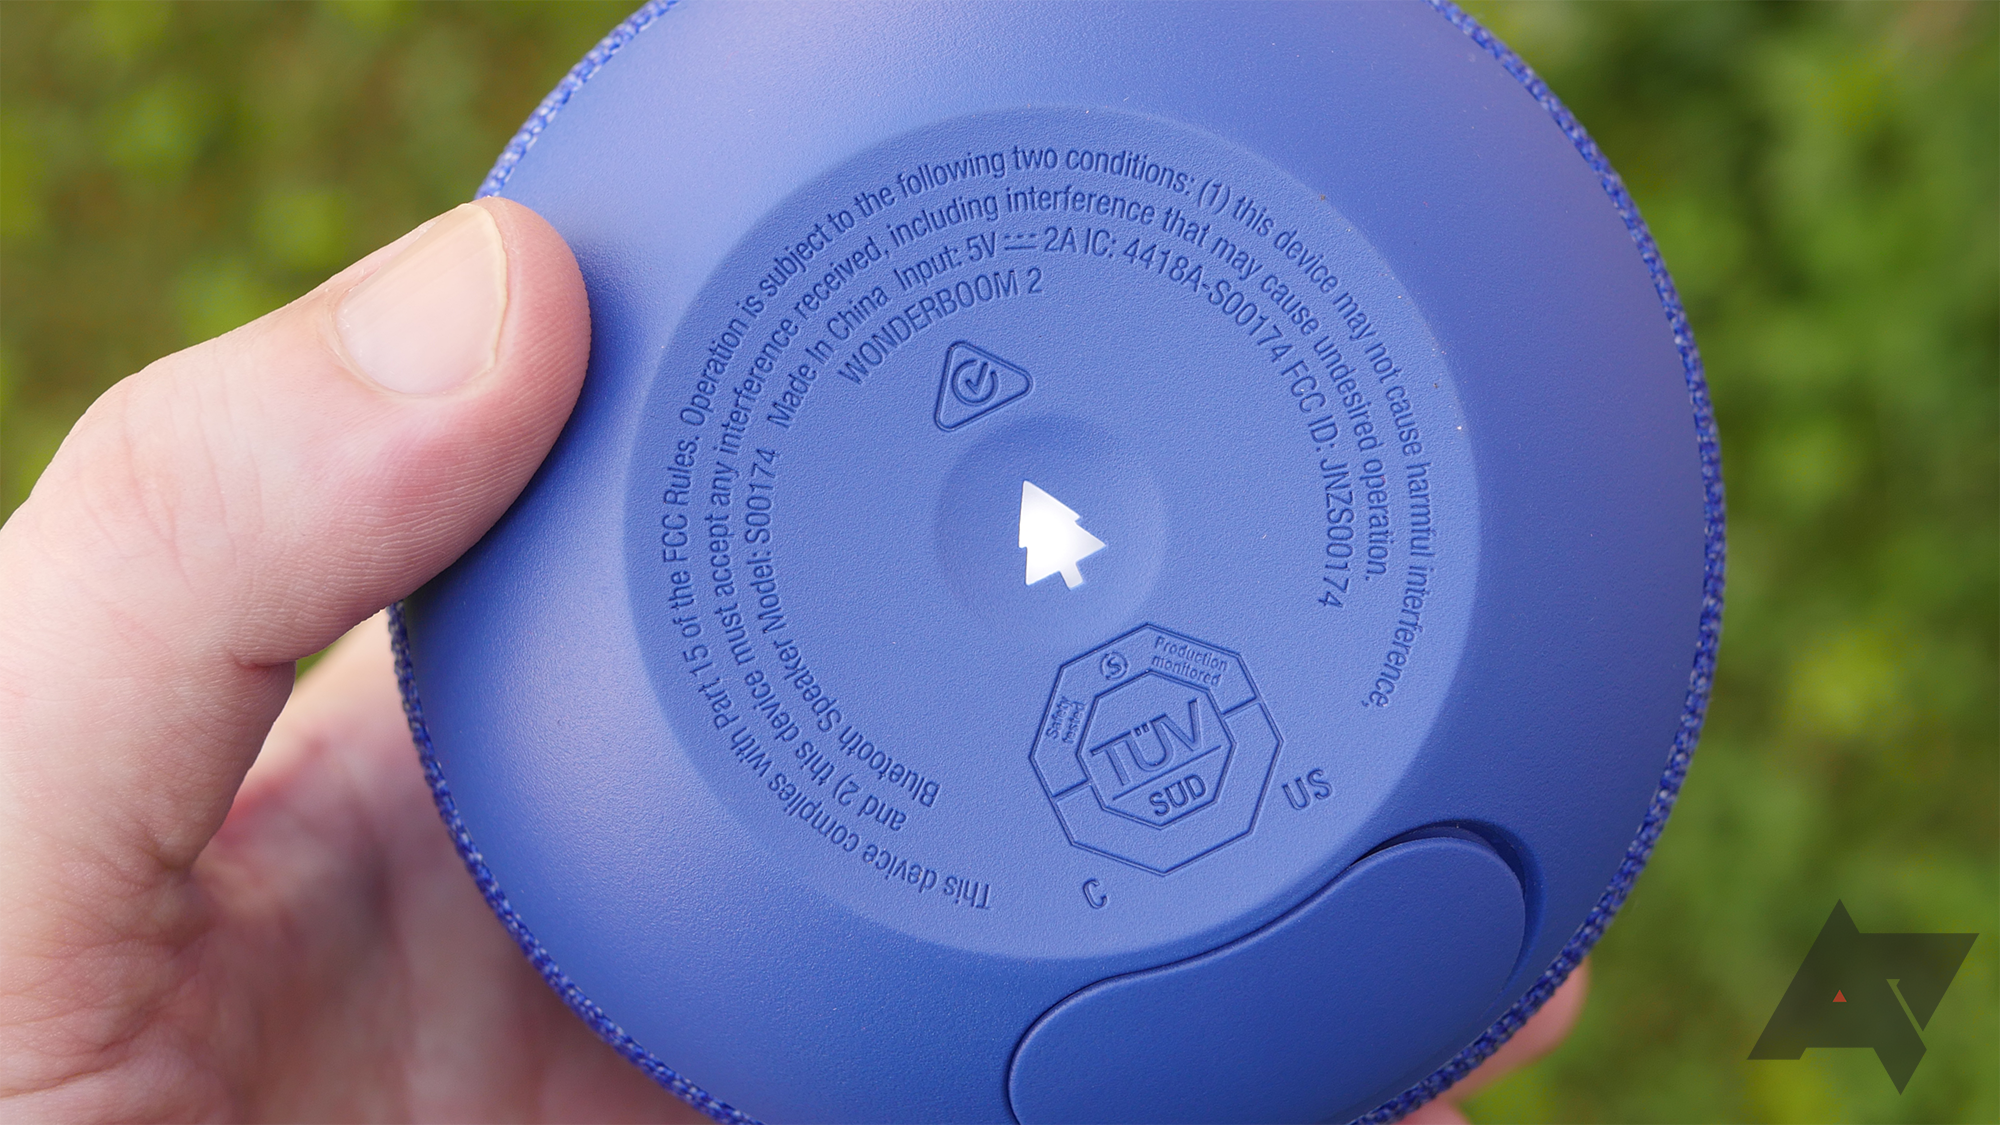 UE Wonderboom 2 review: Some solid upgrades help this rugged speaker stand  out